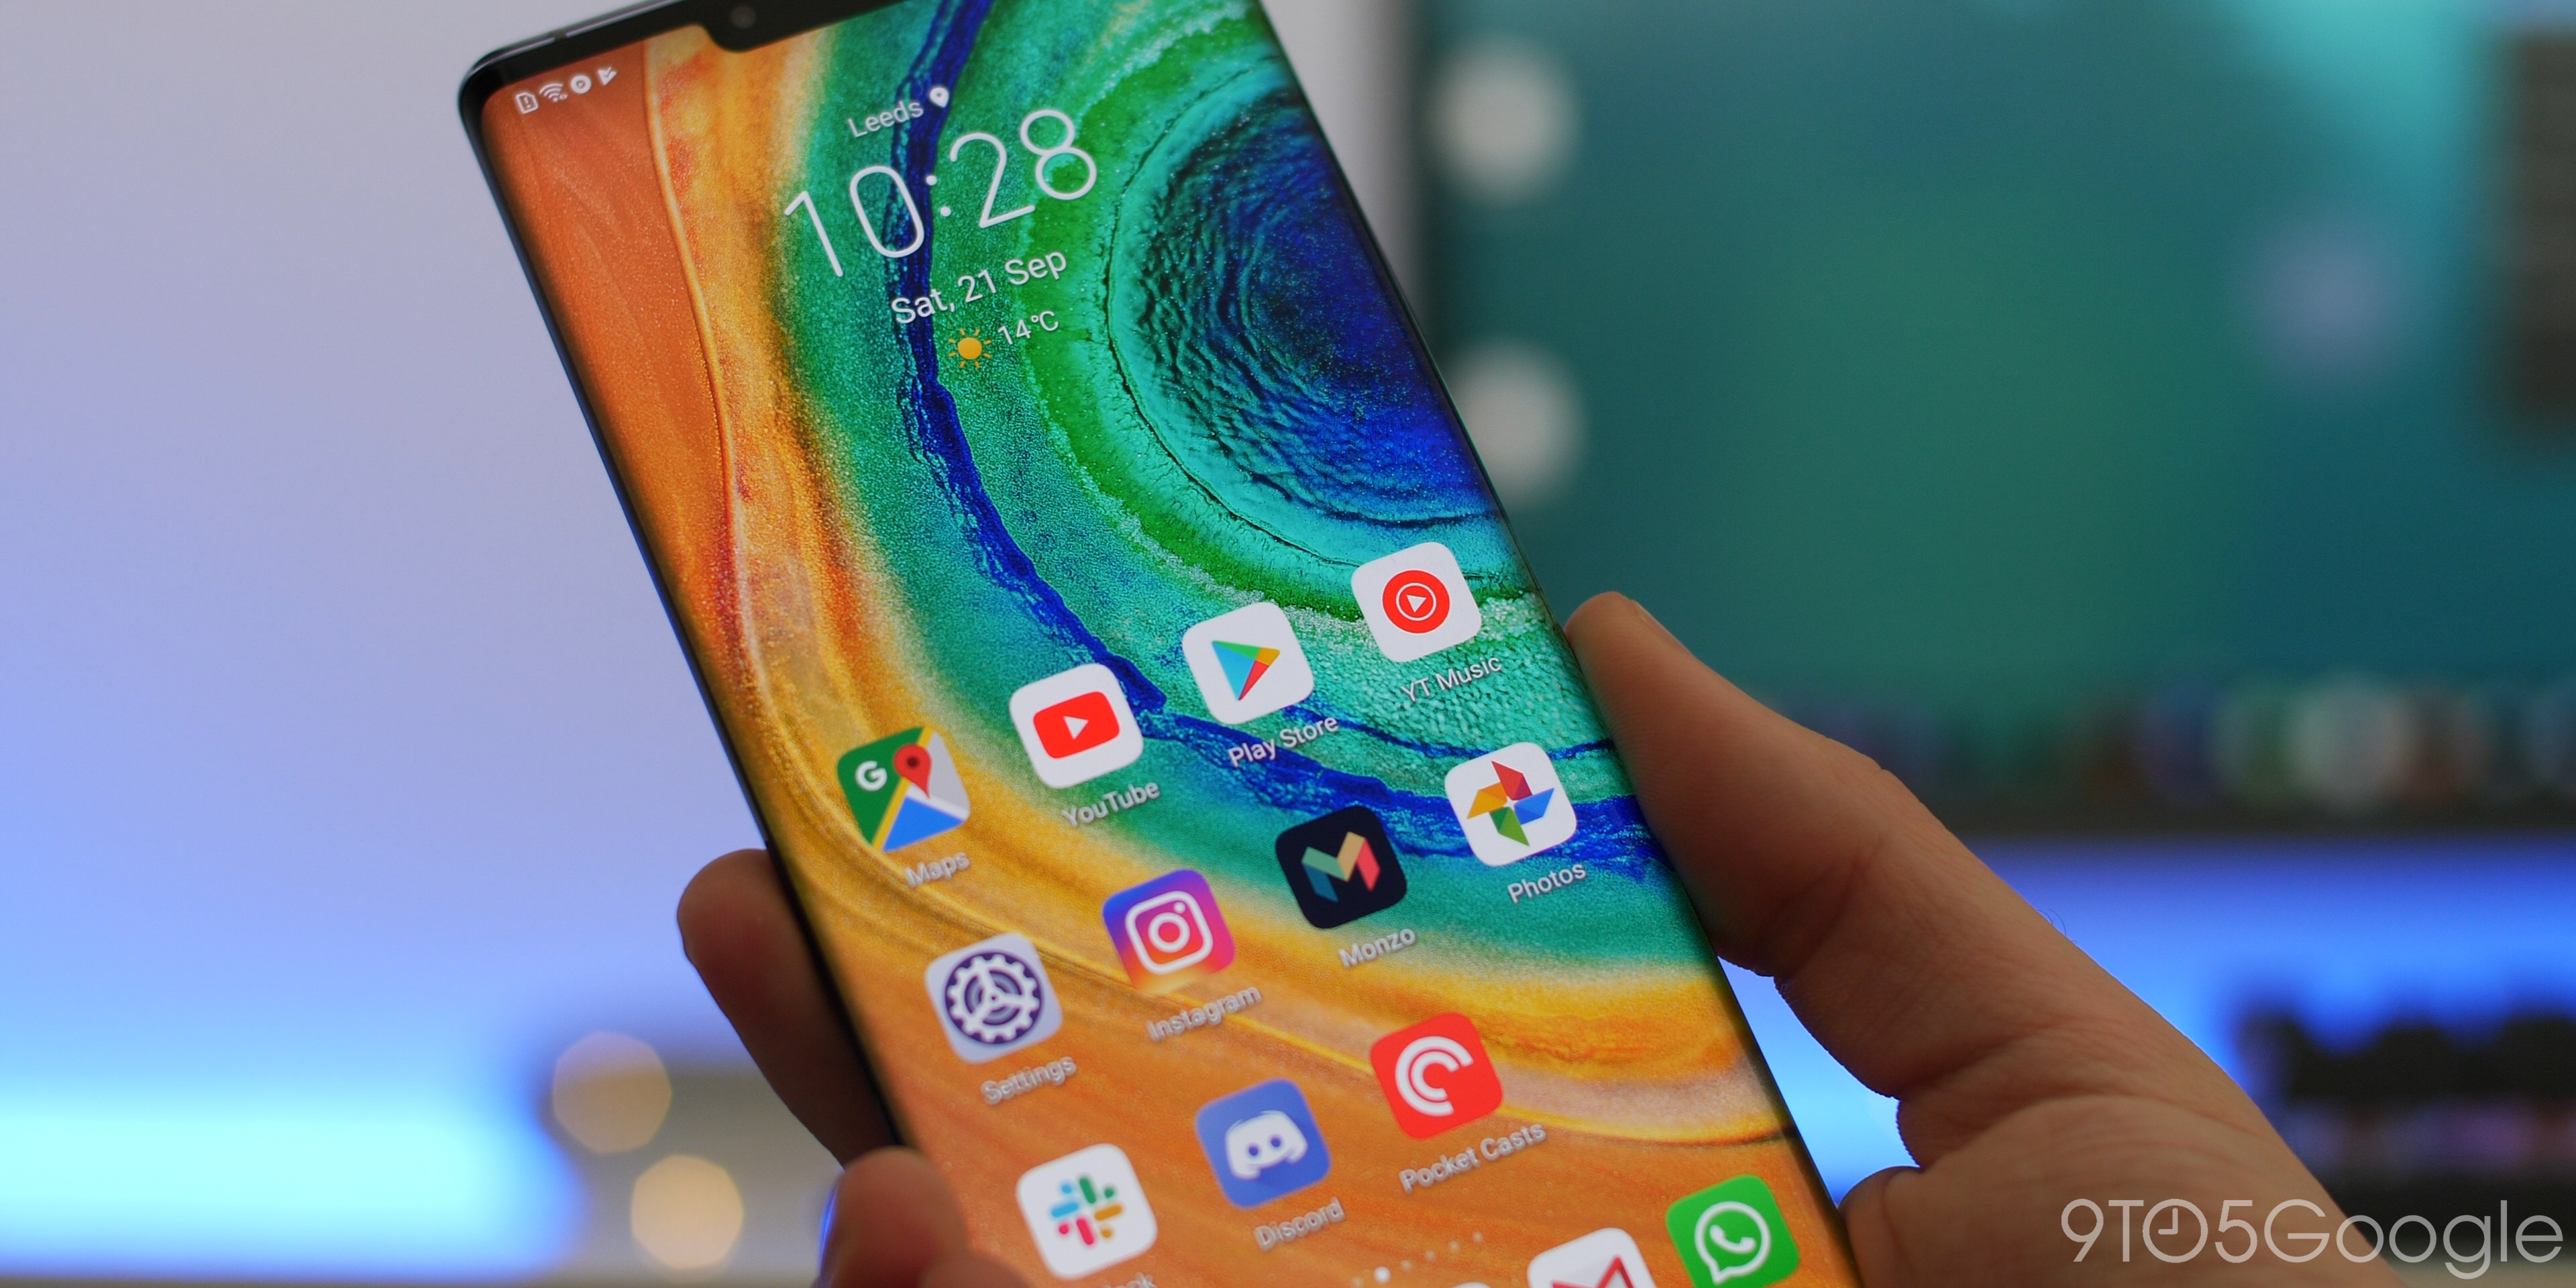 This is how easy it is to get Google apps on the Huawei Mate 30 Pro [Video]